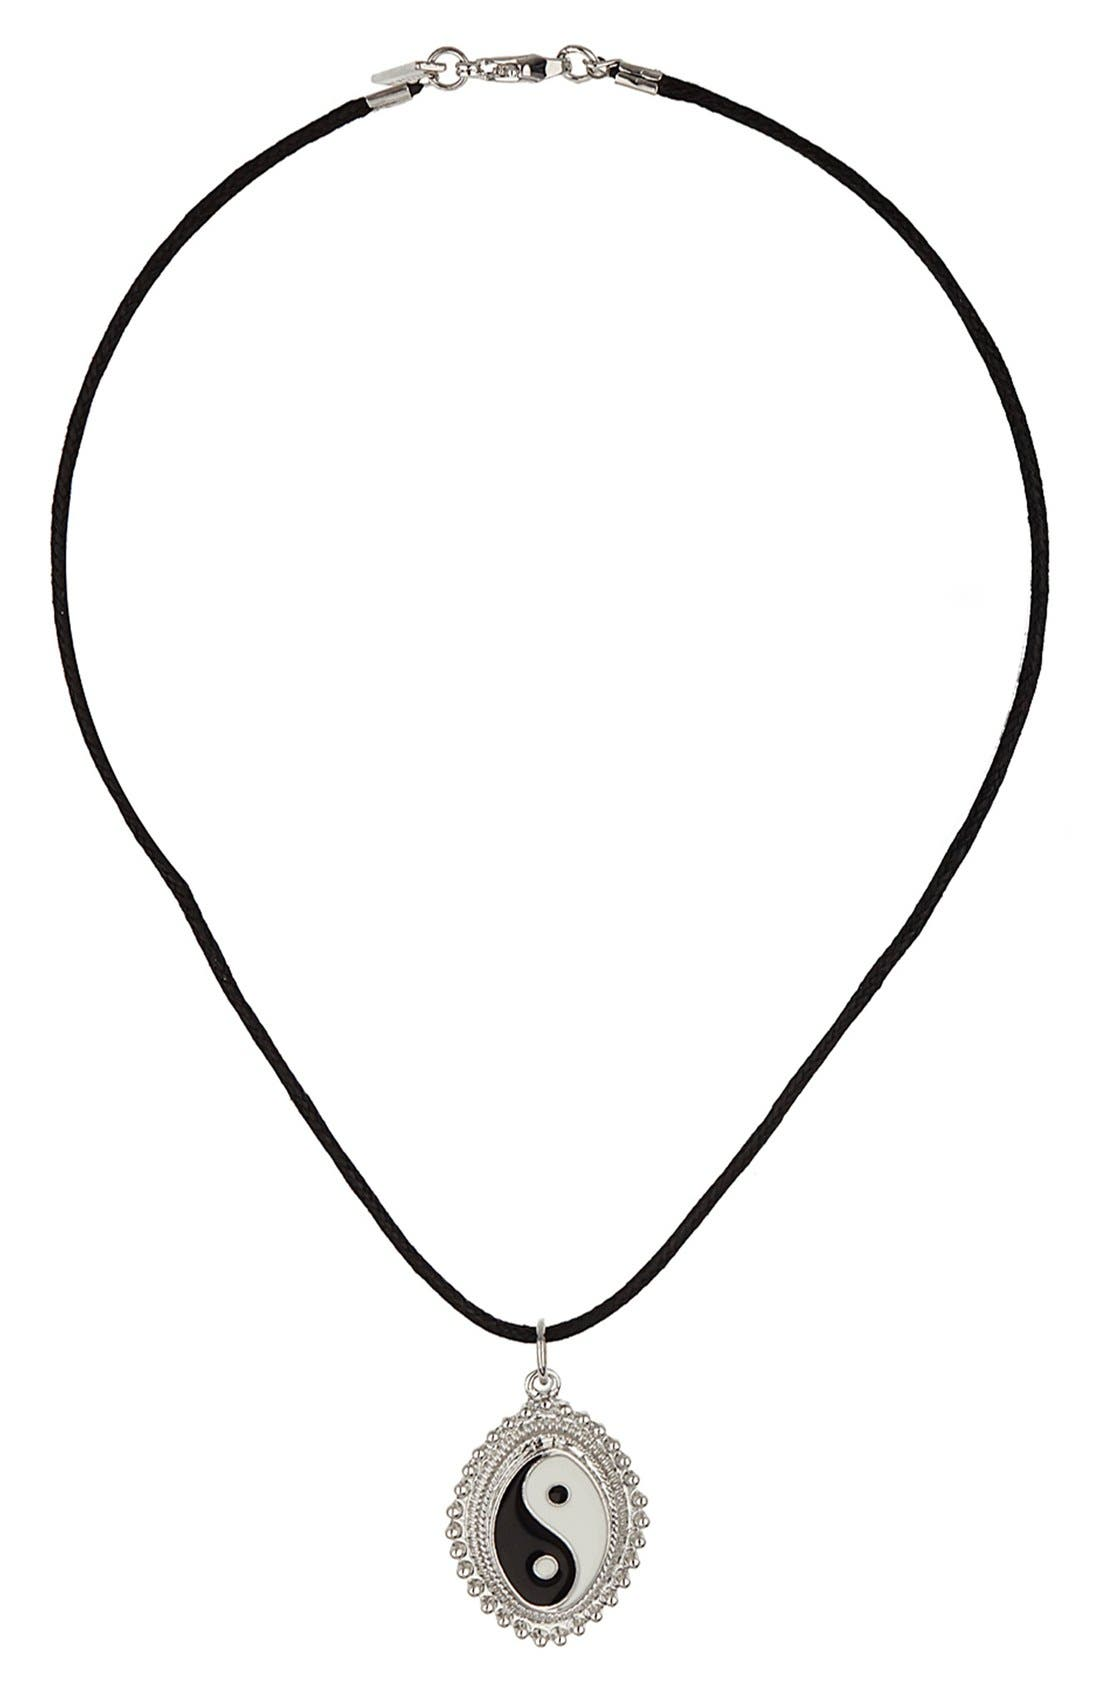 Alternate Image 1 Selected - Topshop Yin & Yang Charm Necklace